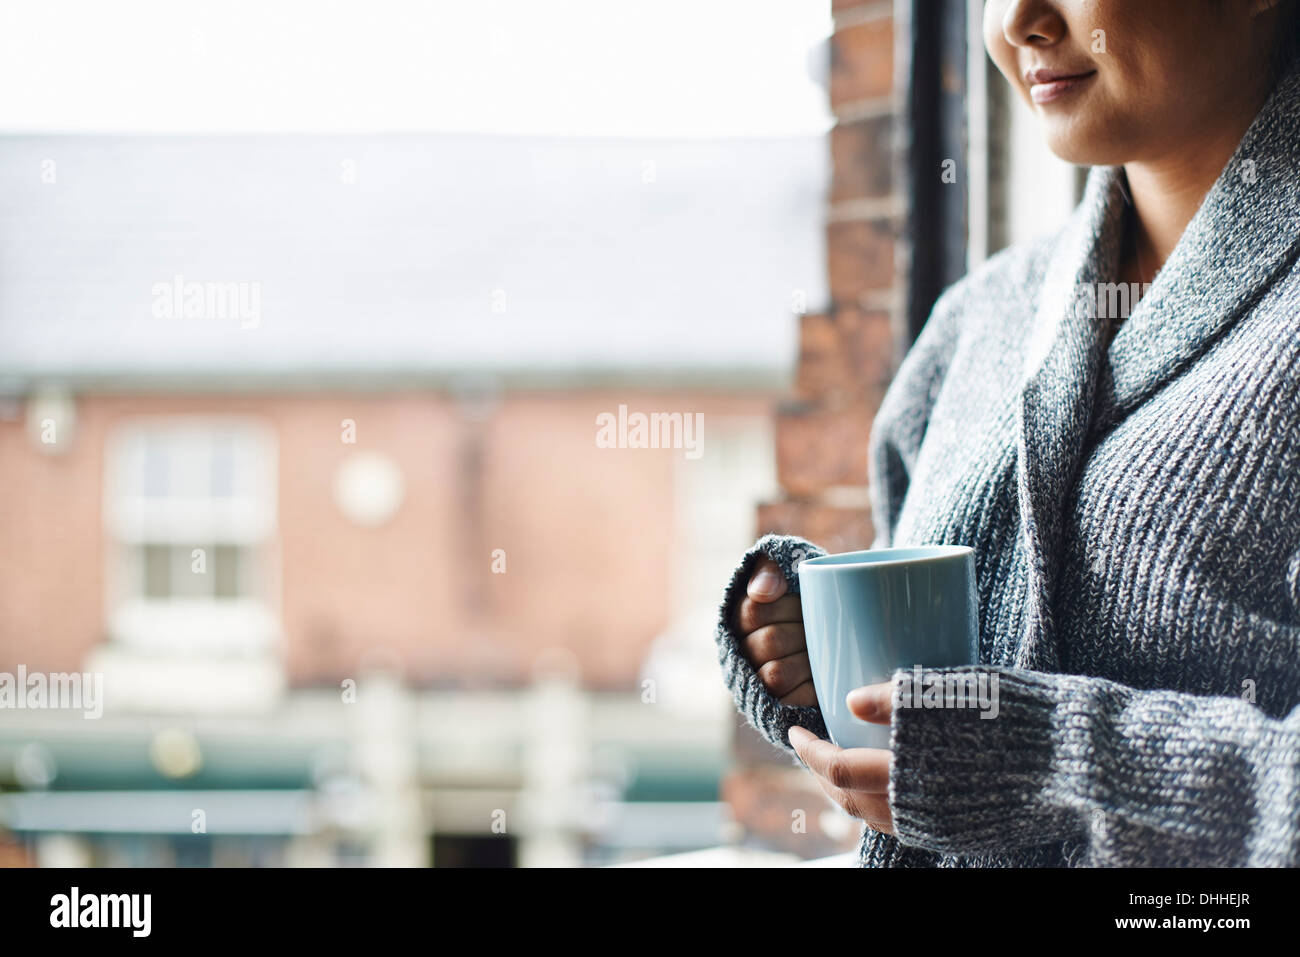 Young woman in kitchen holding mug of coffee - Stock Image